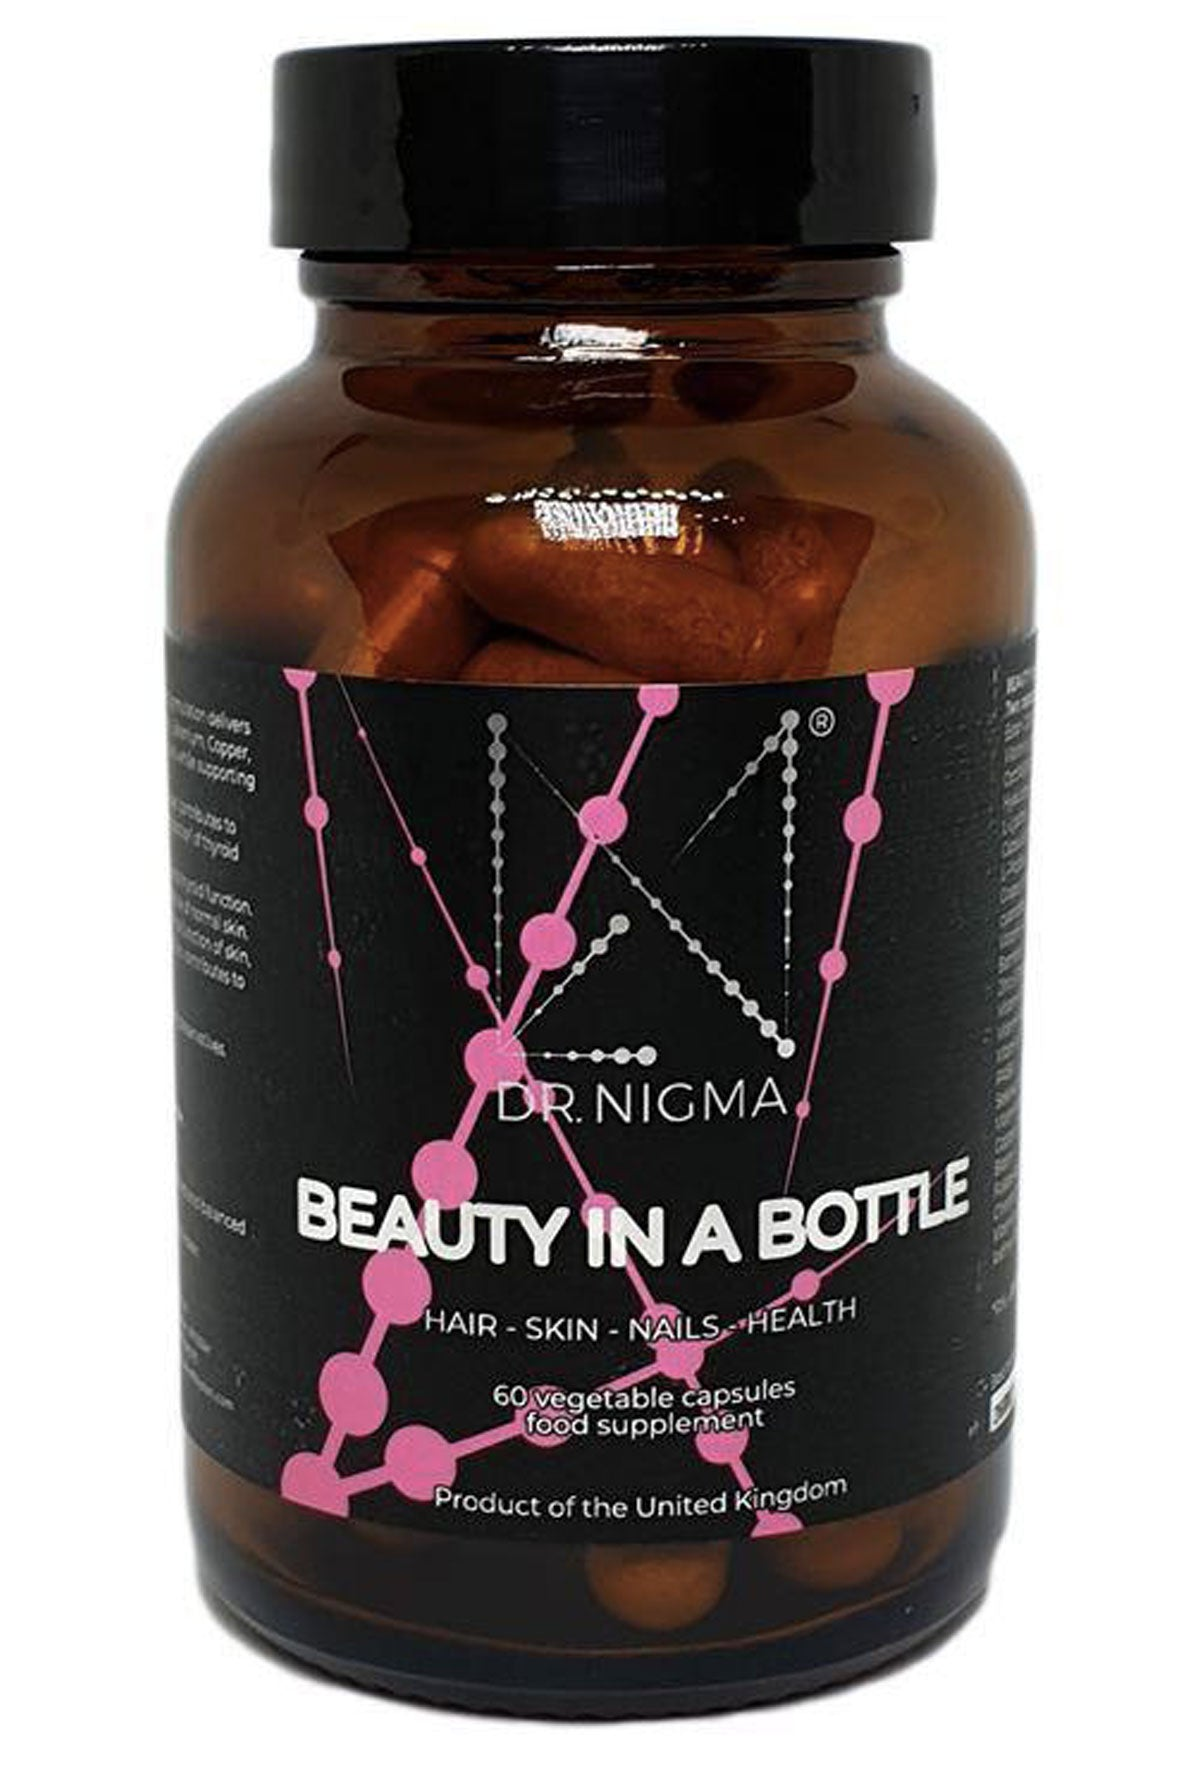 Dr Nigma Beauty in a Bottle - 60 capsules